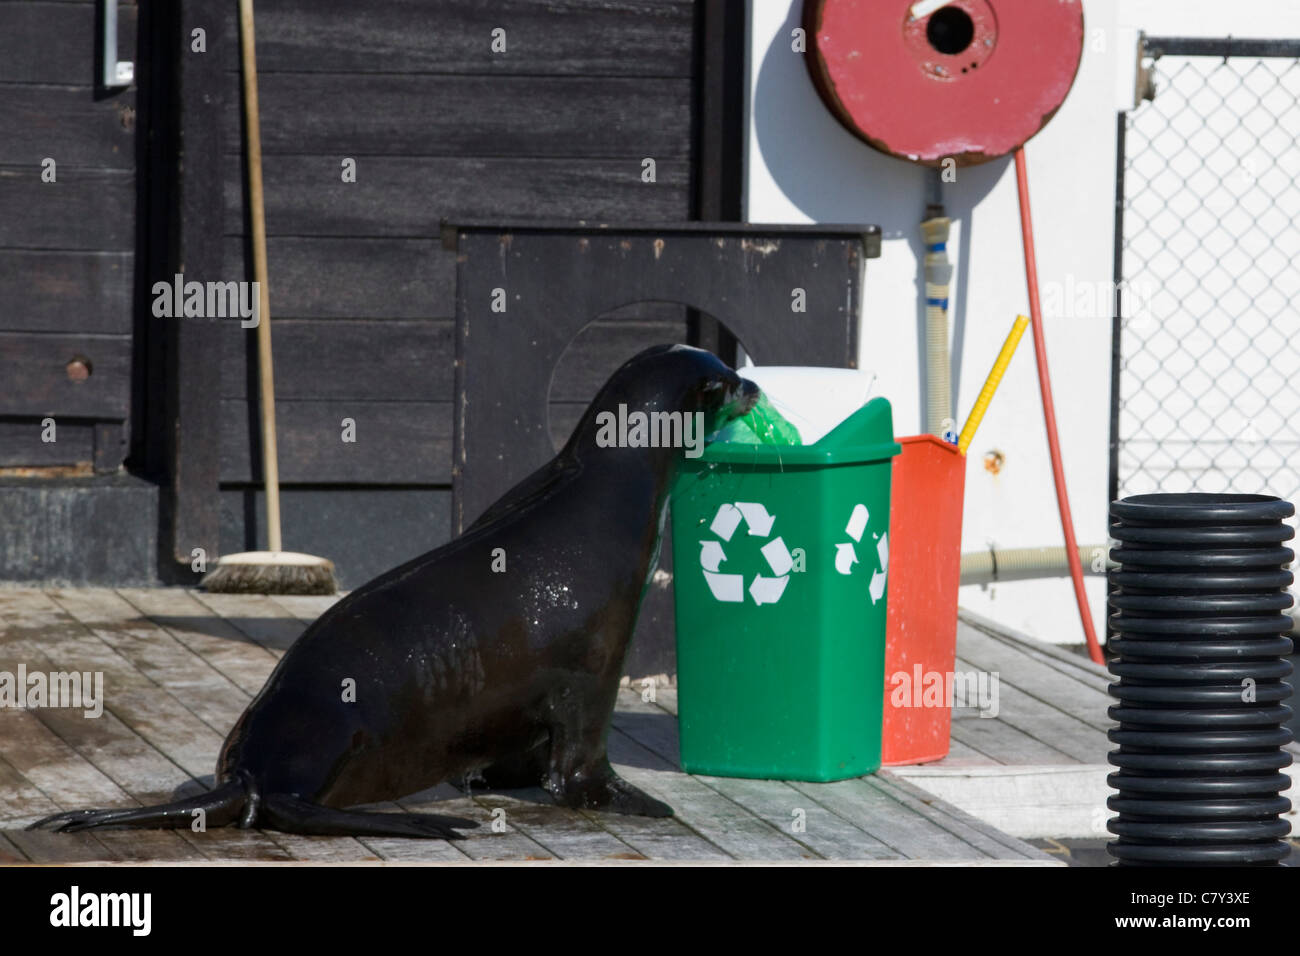 Pinniped Sea Lion showing off his skills by Recycling a Plastic Bottle at a show in England - Stock Image